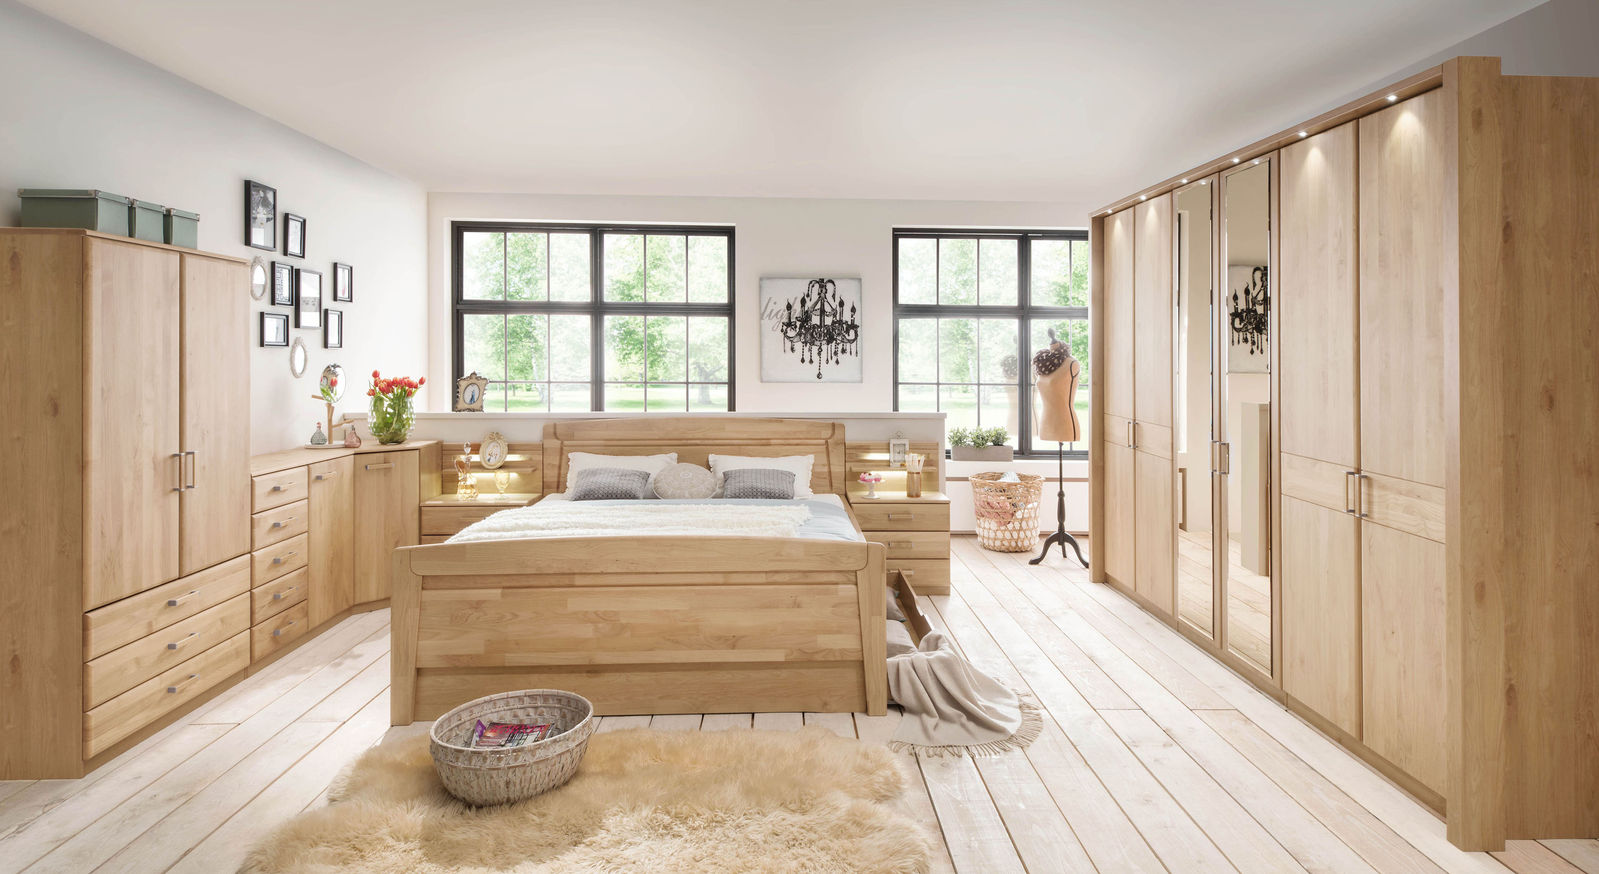 Beautiful Schlafzimmer Aus Holz Pictures - House Design Ideas - campuscinema.us